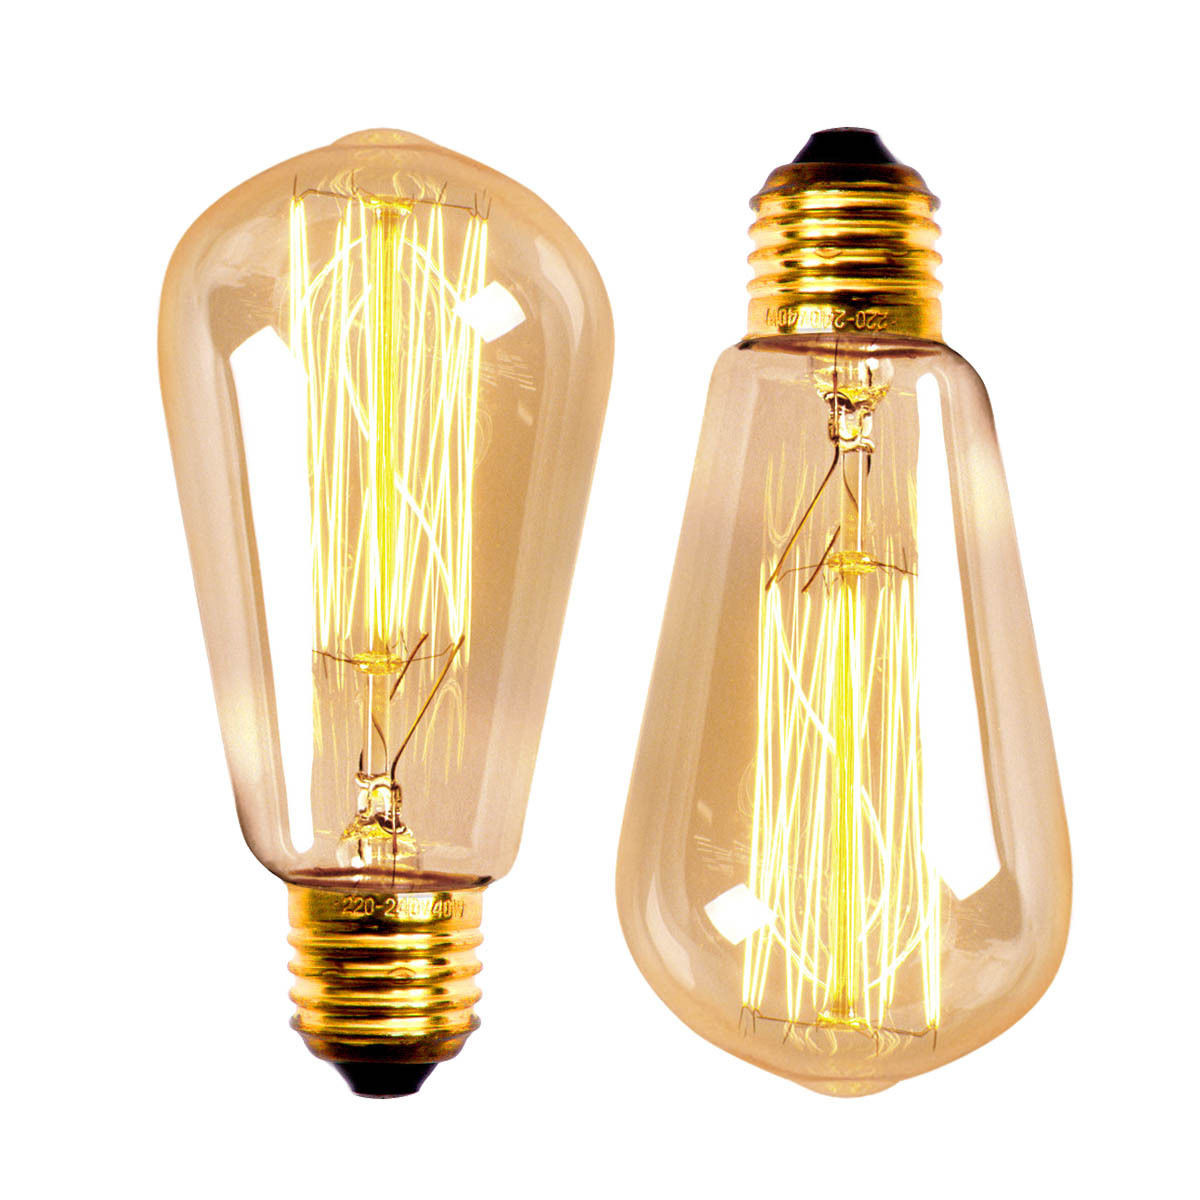 E27 60w St58 Edison Bulb Antique Filament Lamp Retro Vintage Light 220v 110v Alex Nld